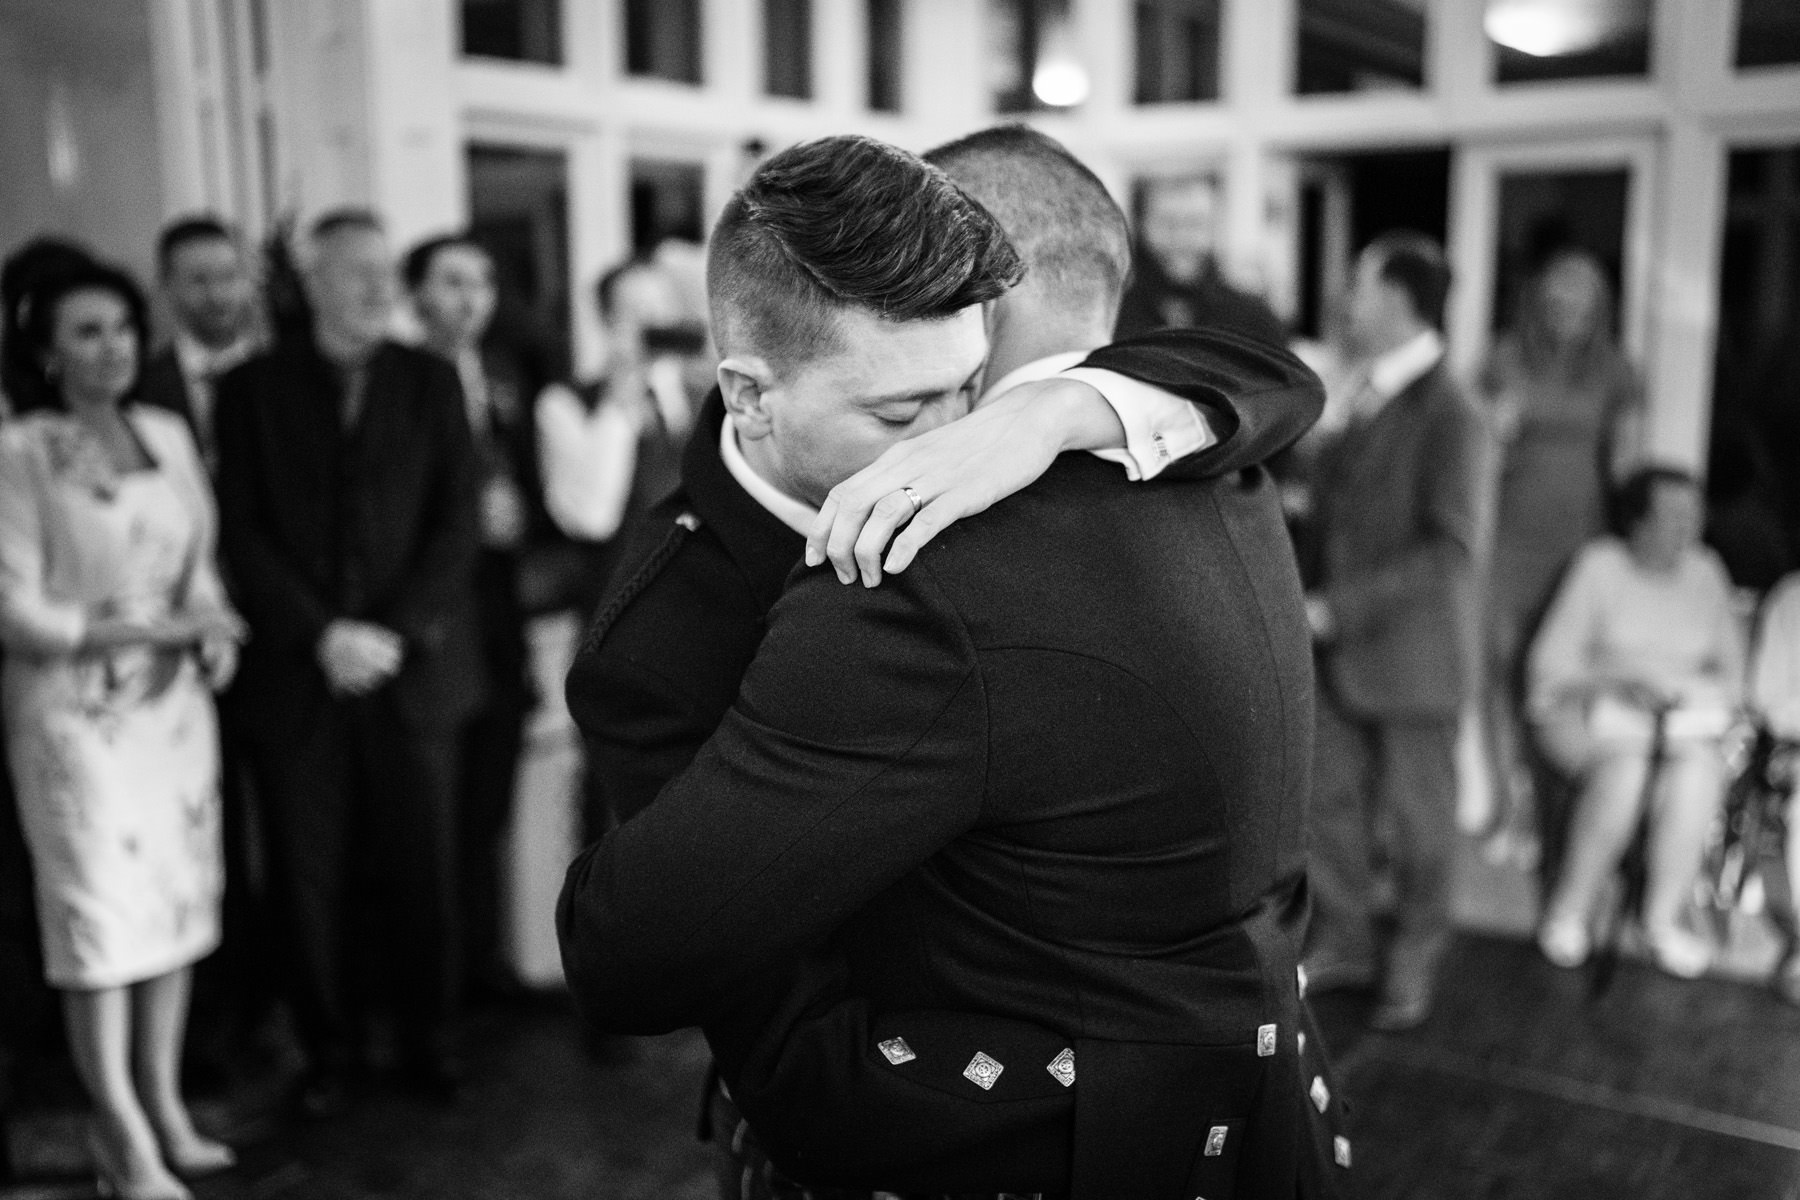 Two Grooms embrace during their first dance in the Winter Conservatory at The Elvetham